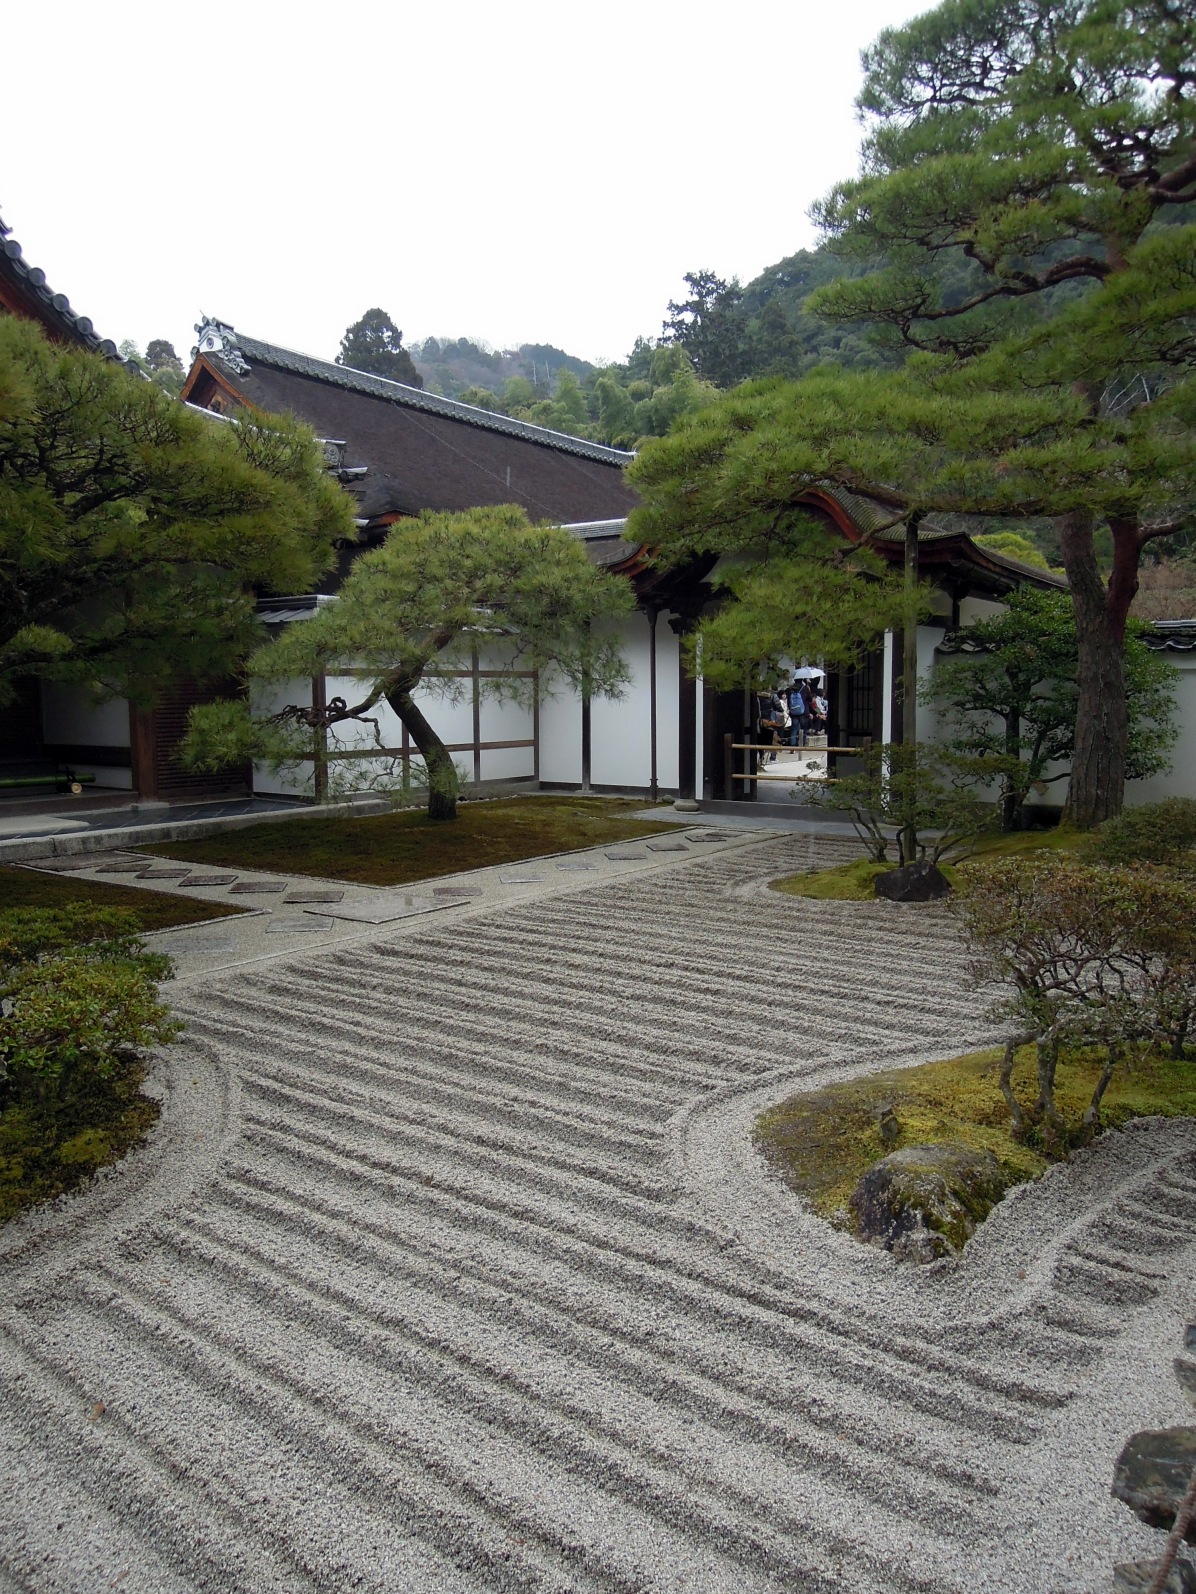 Entering Ginkaku-ji.